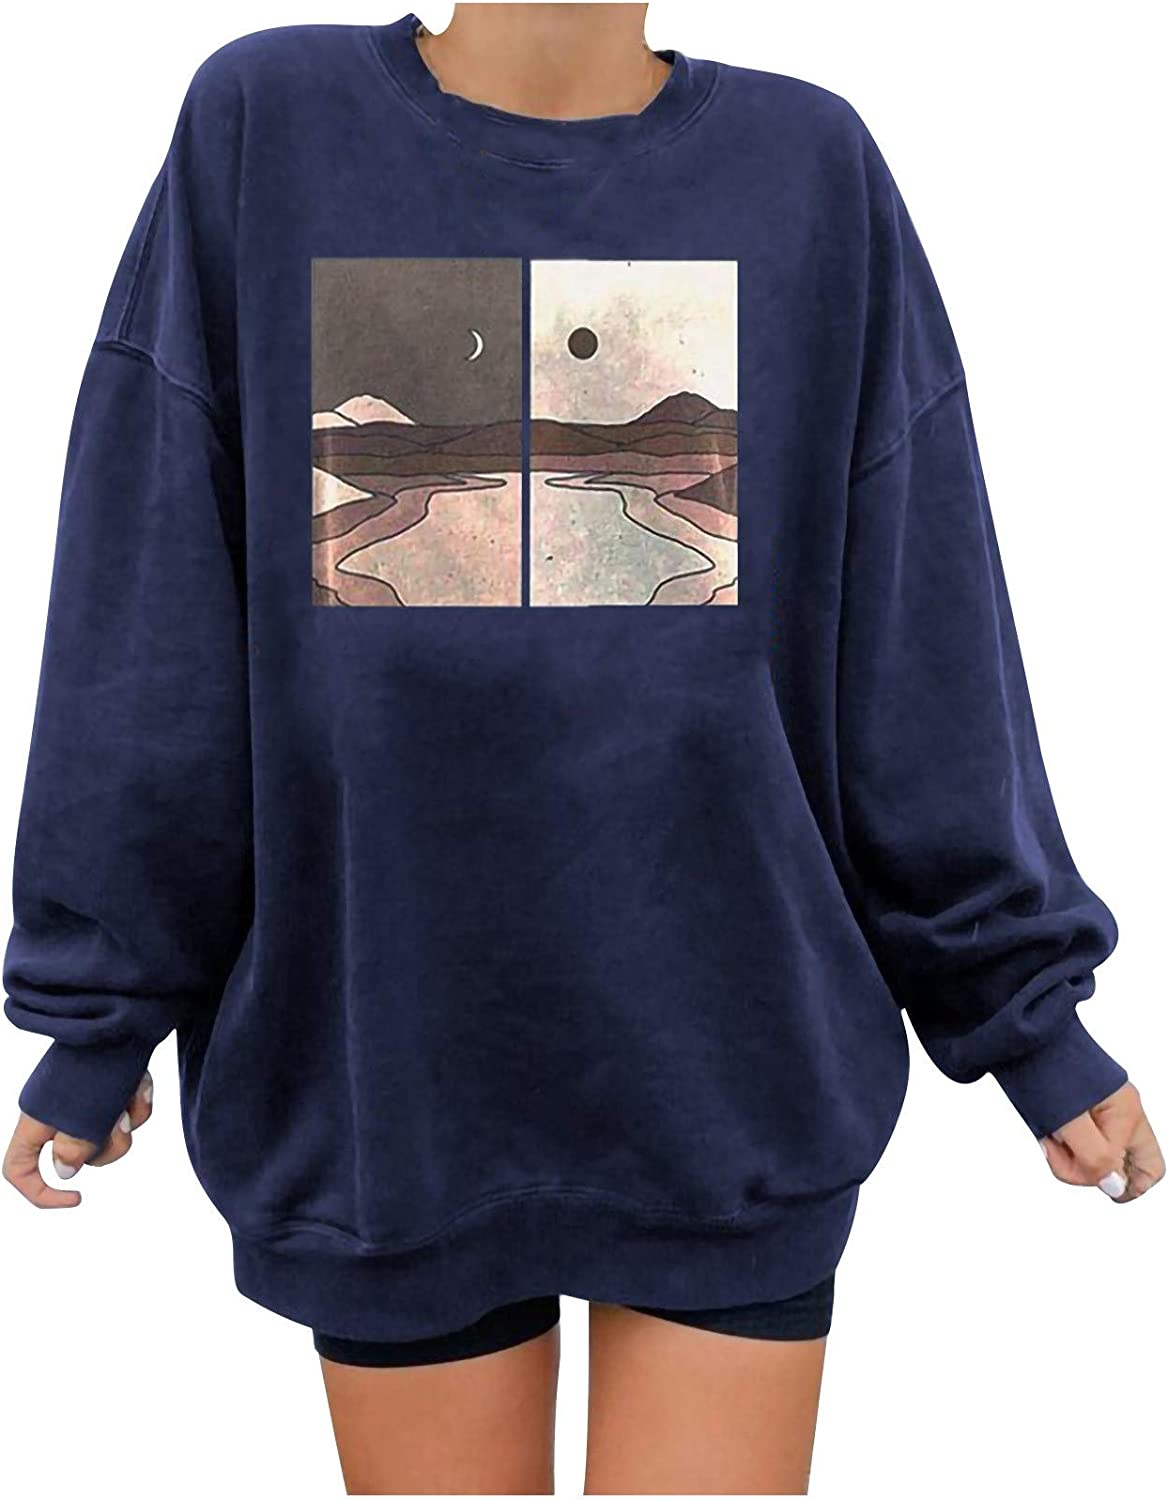 Oversized Sweatshirts For Women, Vintage Graphic Crewneck Pullover Tops Long Sleeve Sweaters Casual Loose Shirts